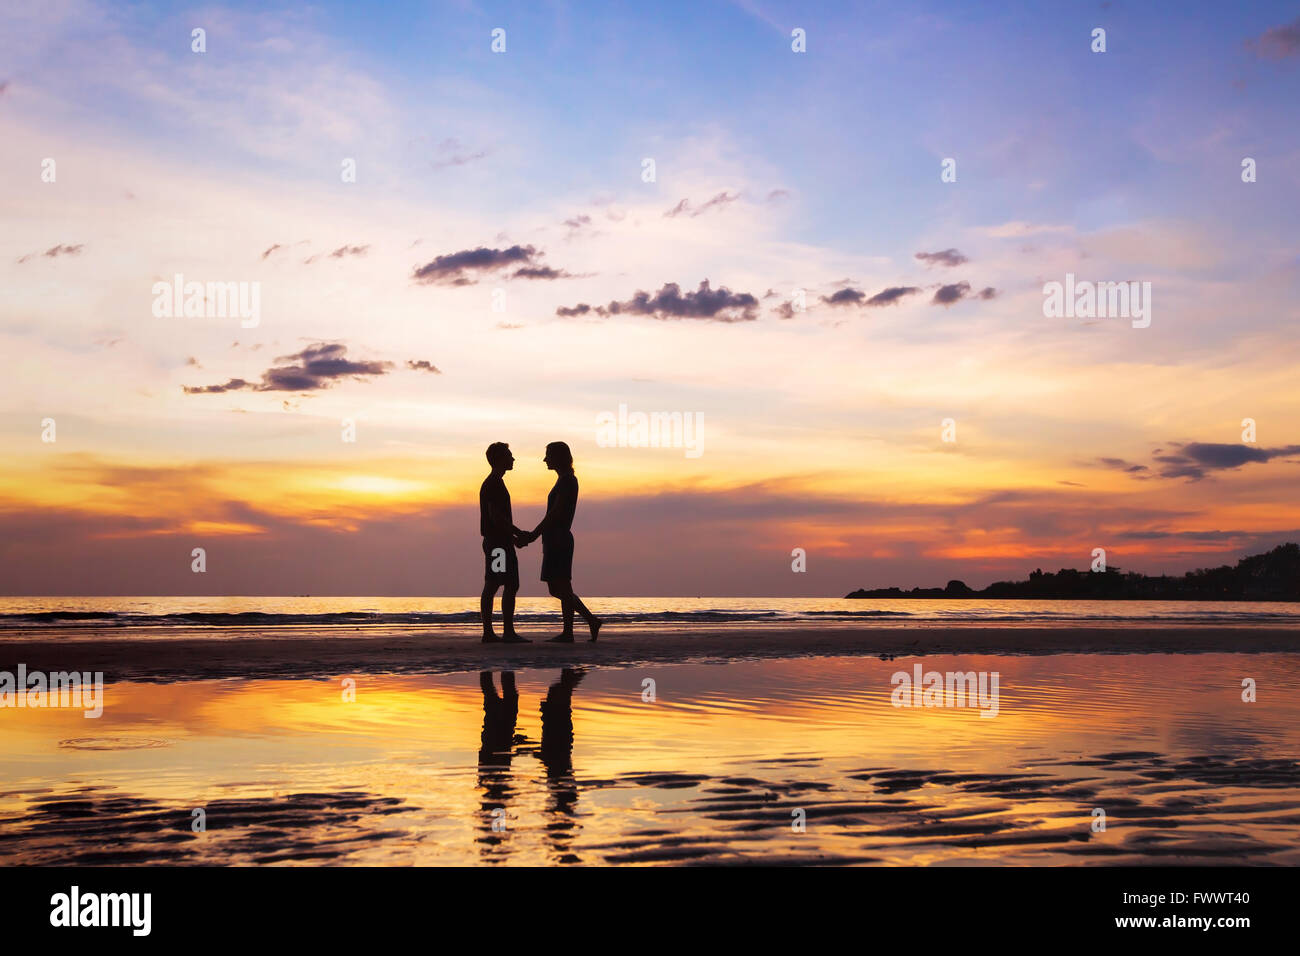 silhouette of affectionate couple on the beach at sunset, love concept, man and woman, beautiful background - Stock Image